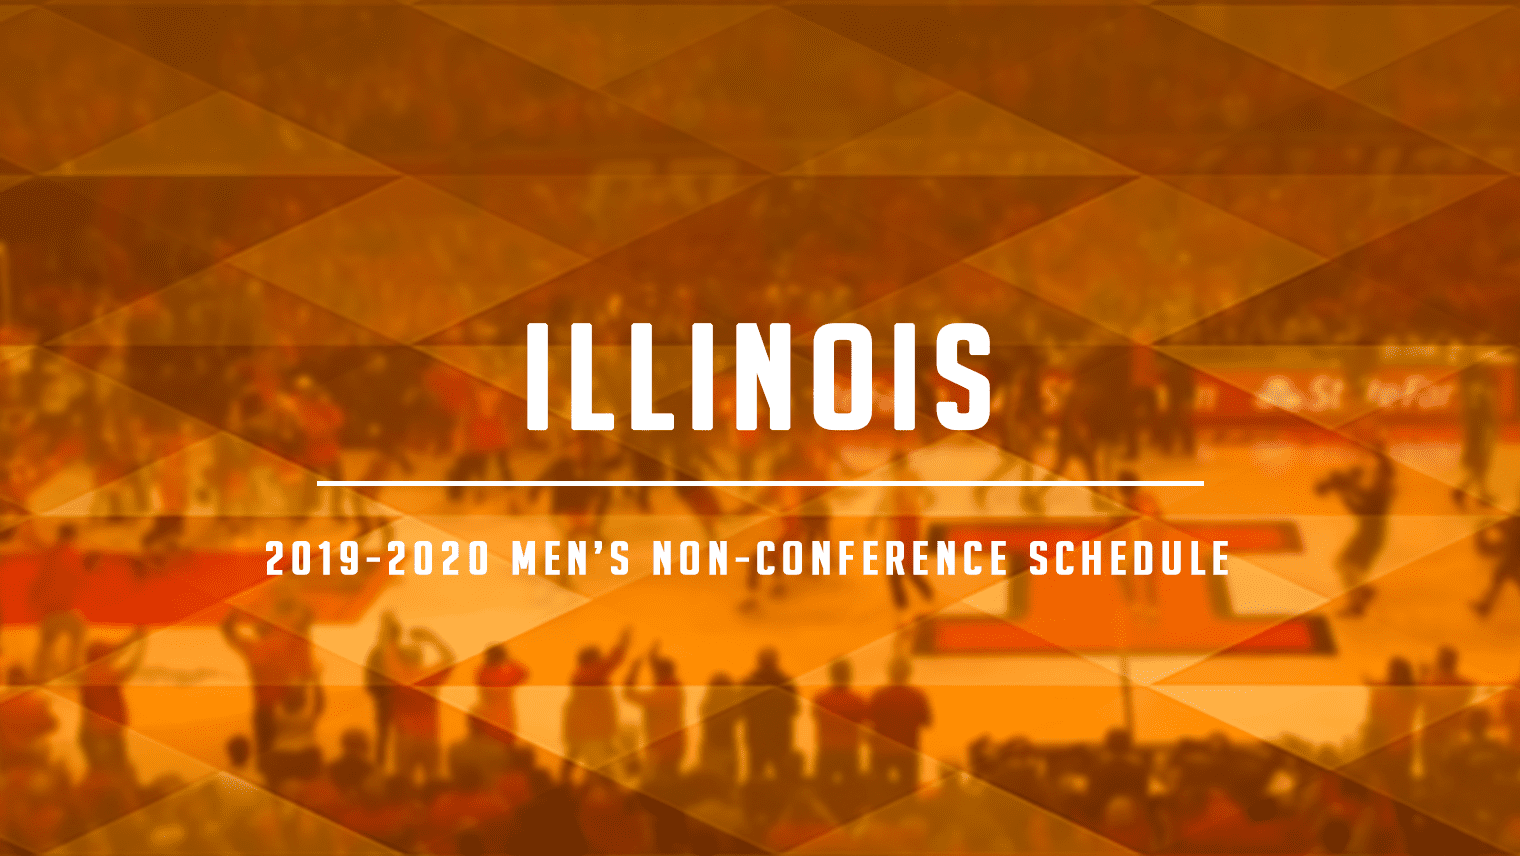 Illinois has a few marquee games in its non-conference slate, with Arizona, Miami and Missouri headlining, and will need some wins to impress the committee.